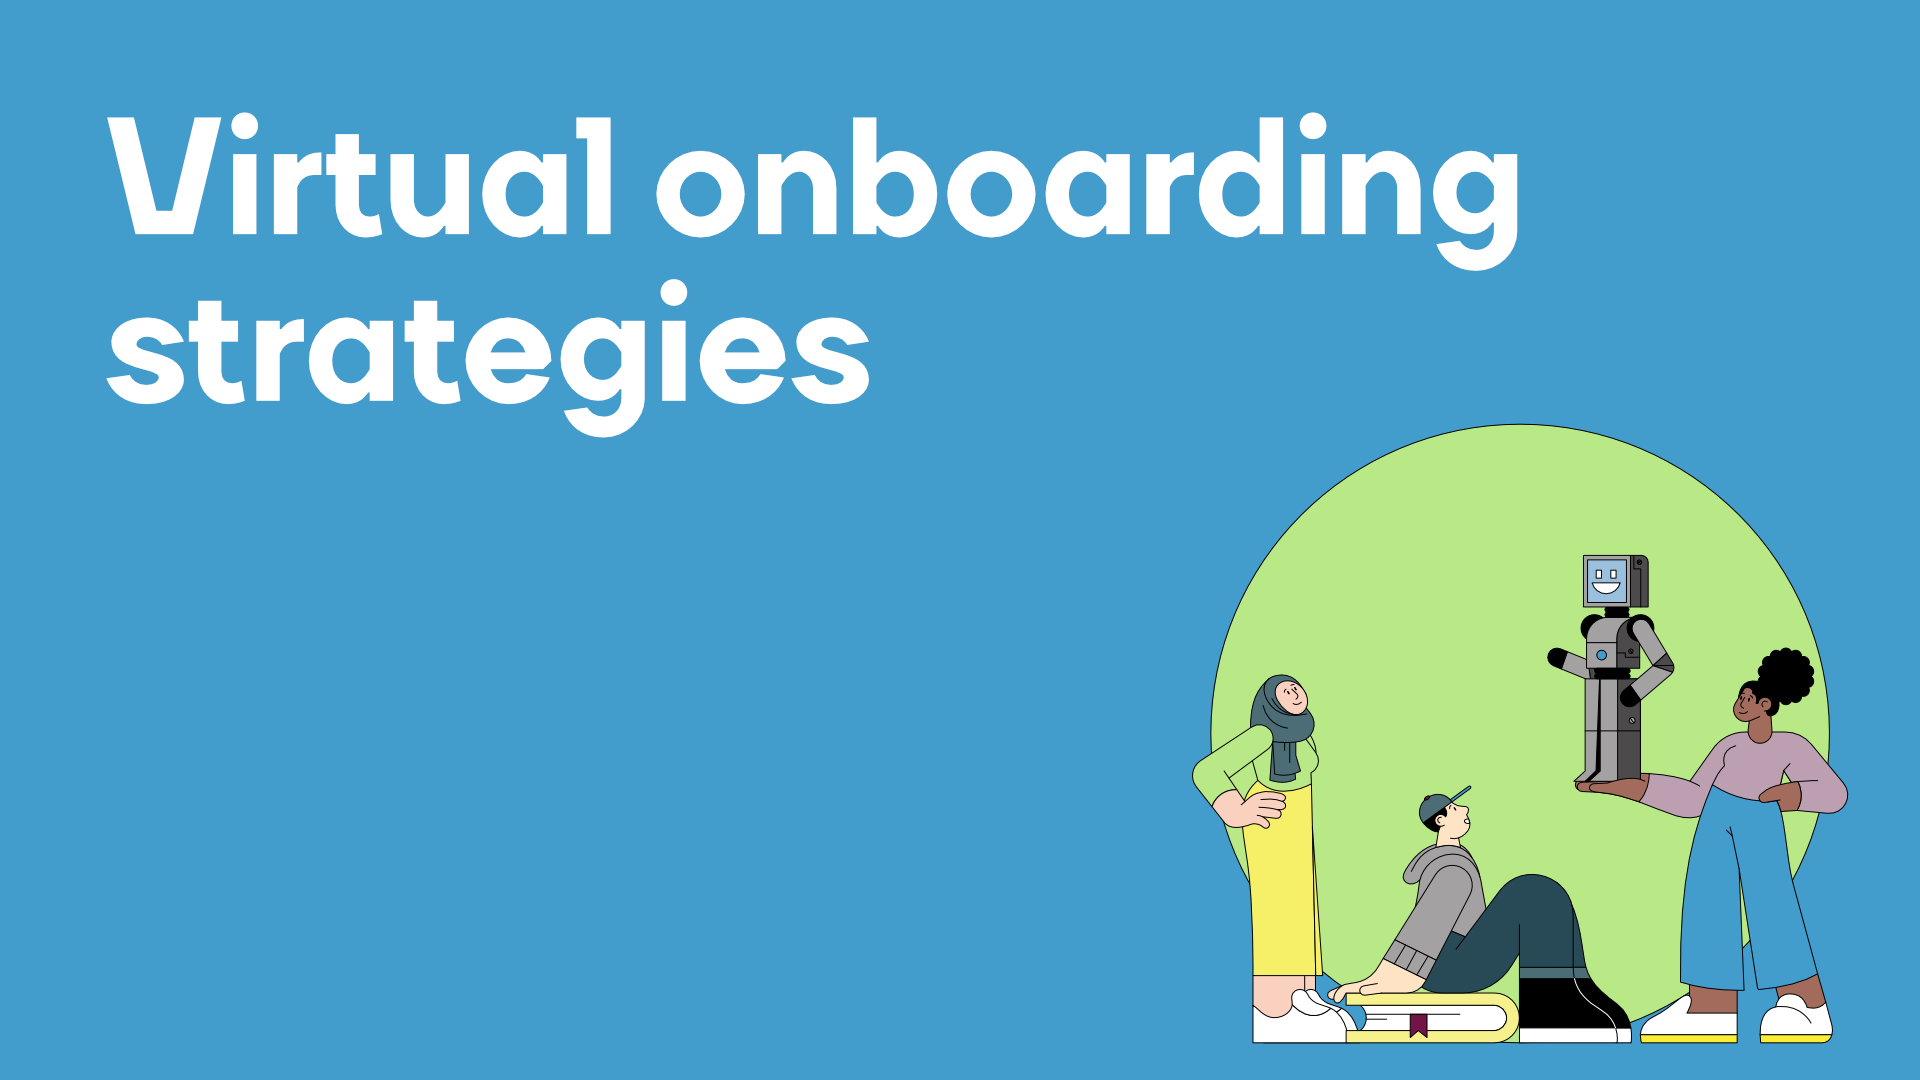 Virtual onboarding strategies and tips